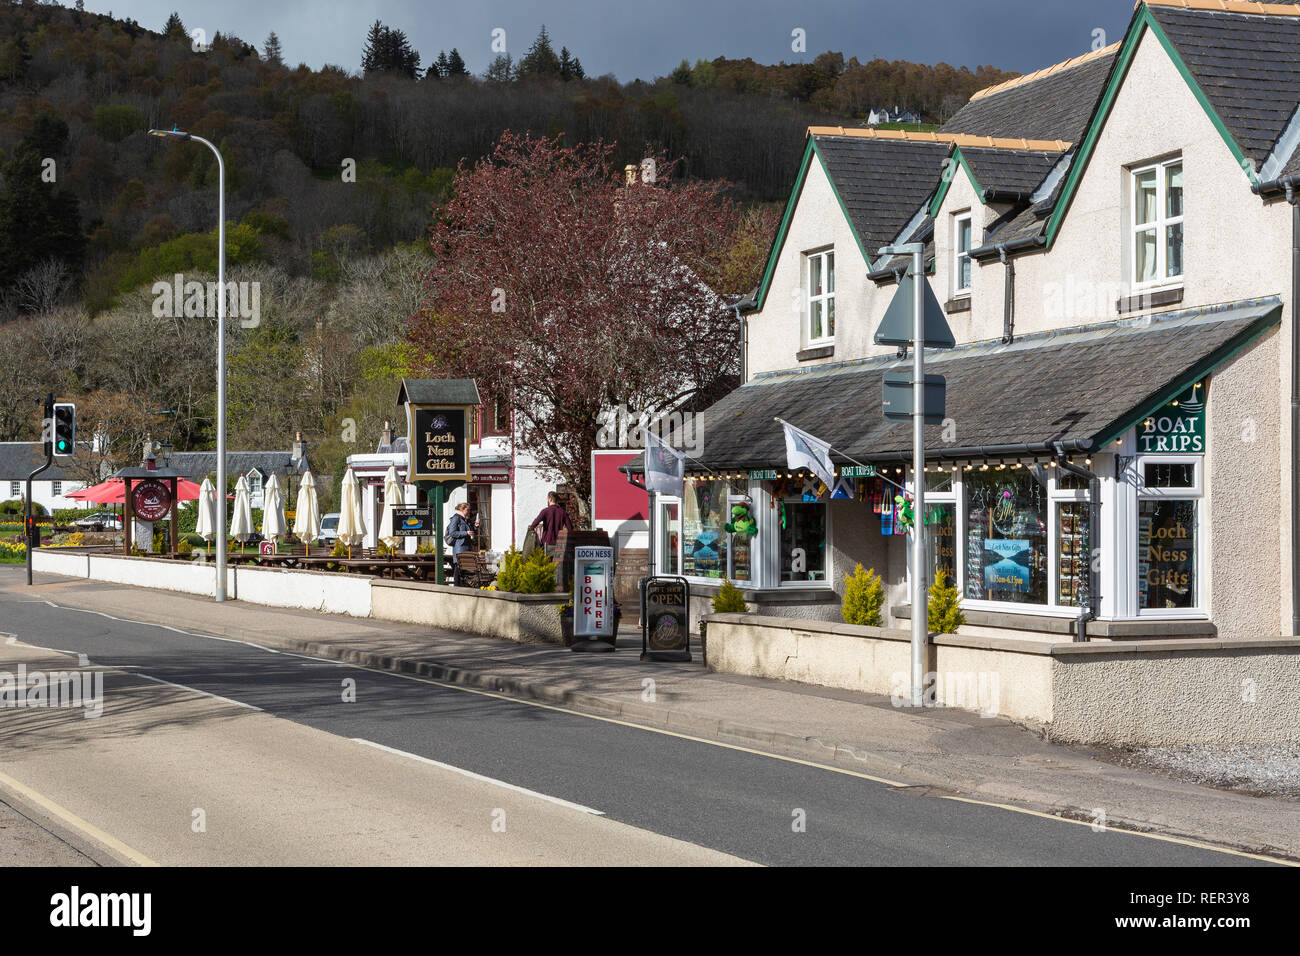 Gift shop on the A82 road in Drumnadrochit, Highland, Scotland - Stock Image